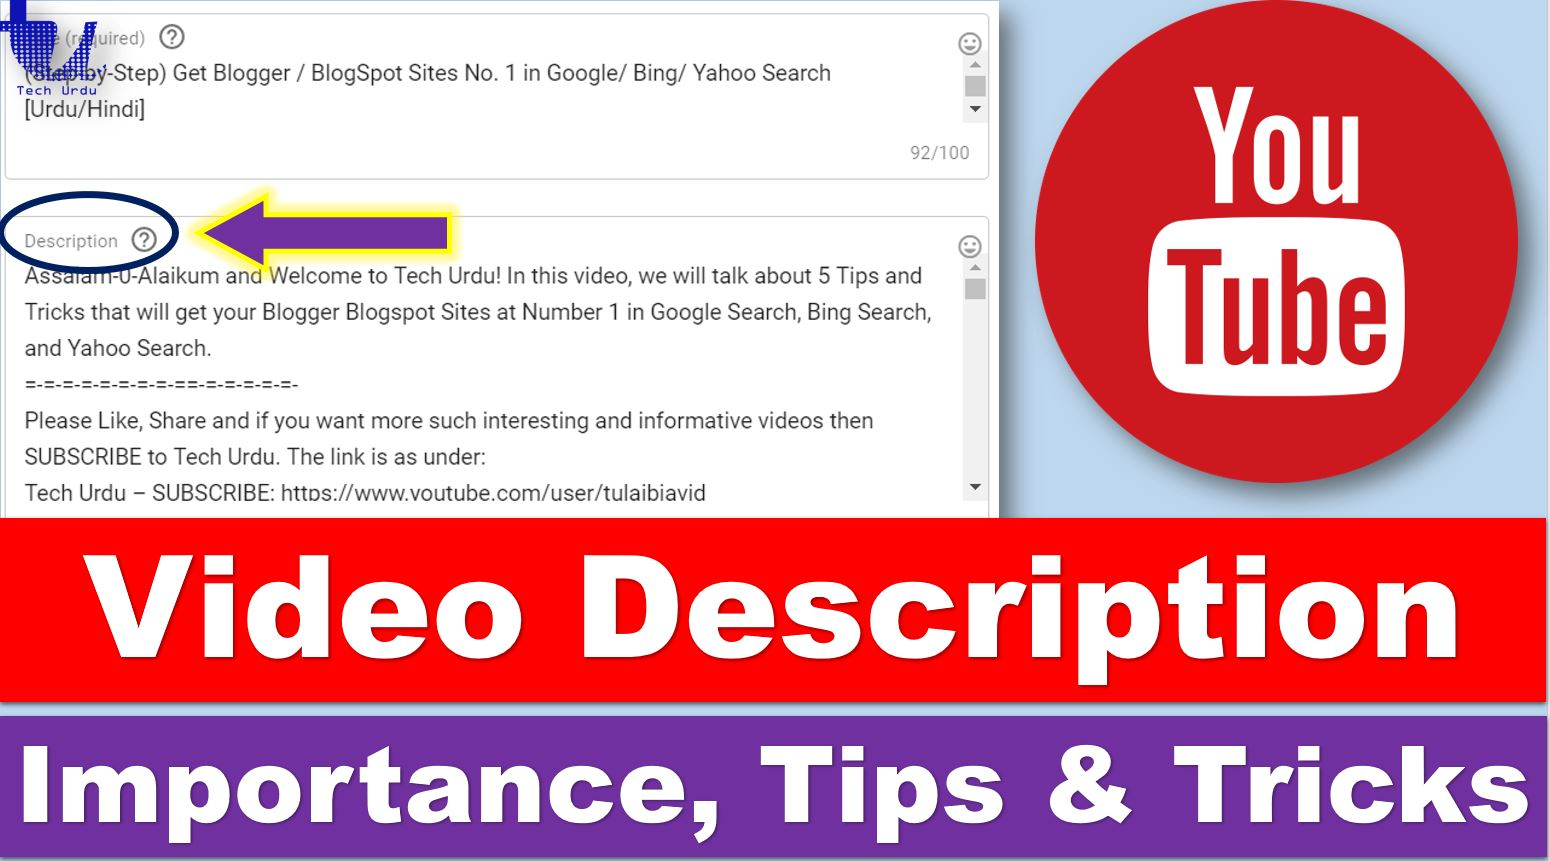 The Importance of Writing DESCRIPTIONS for YouTube Videos